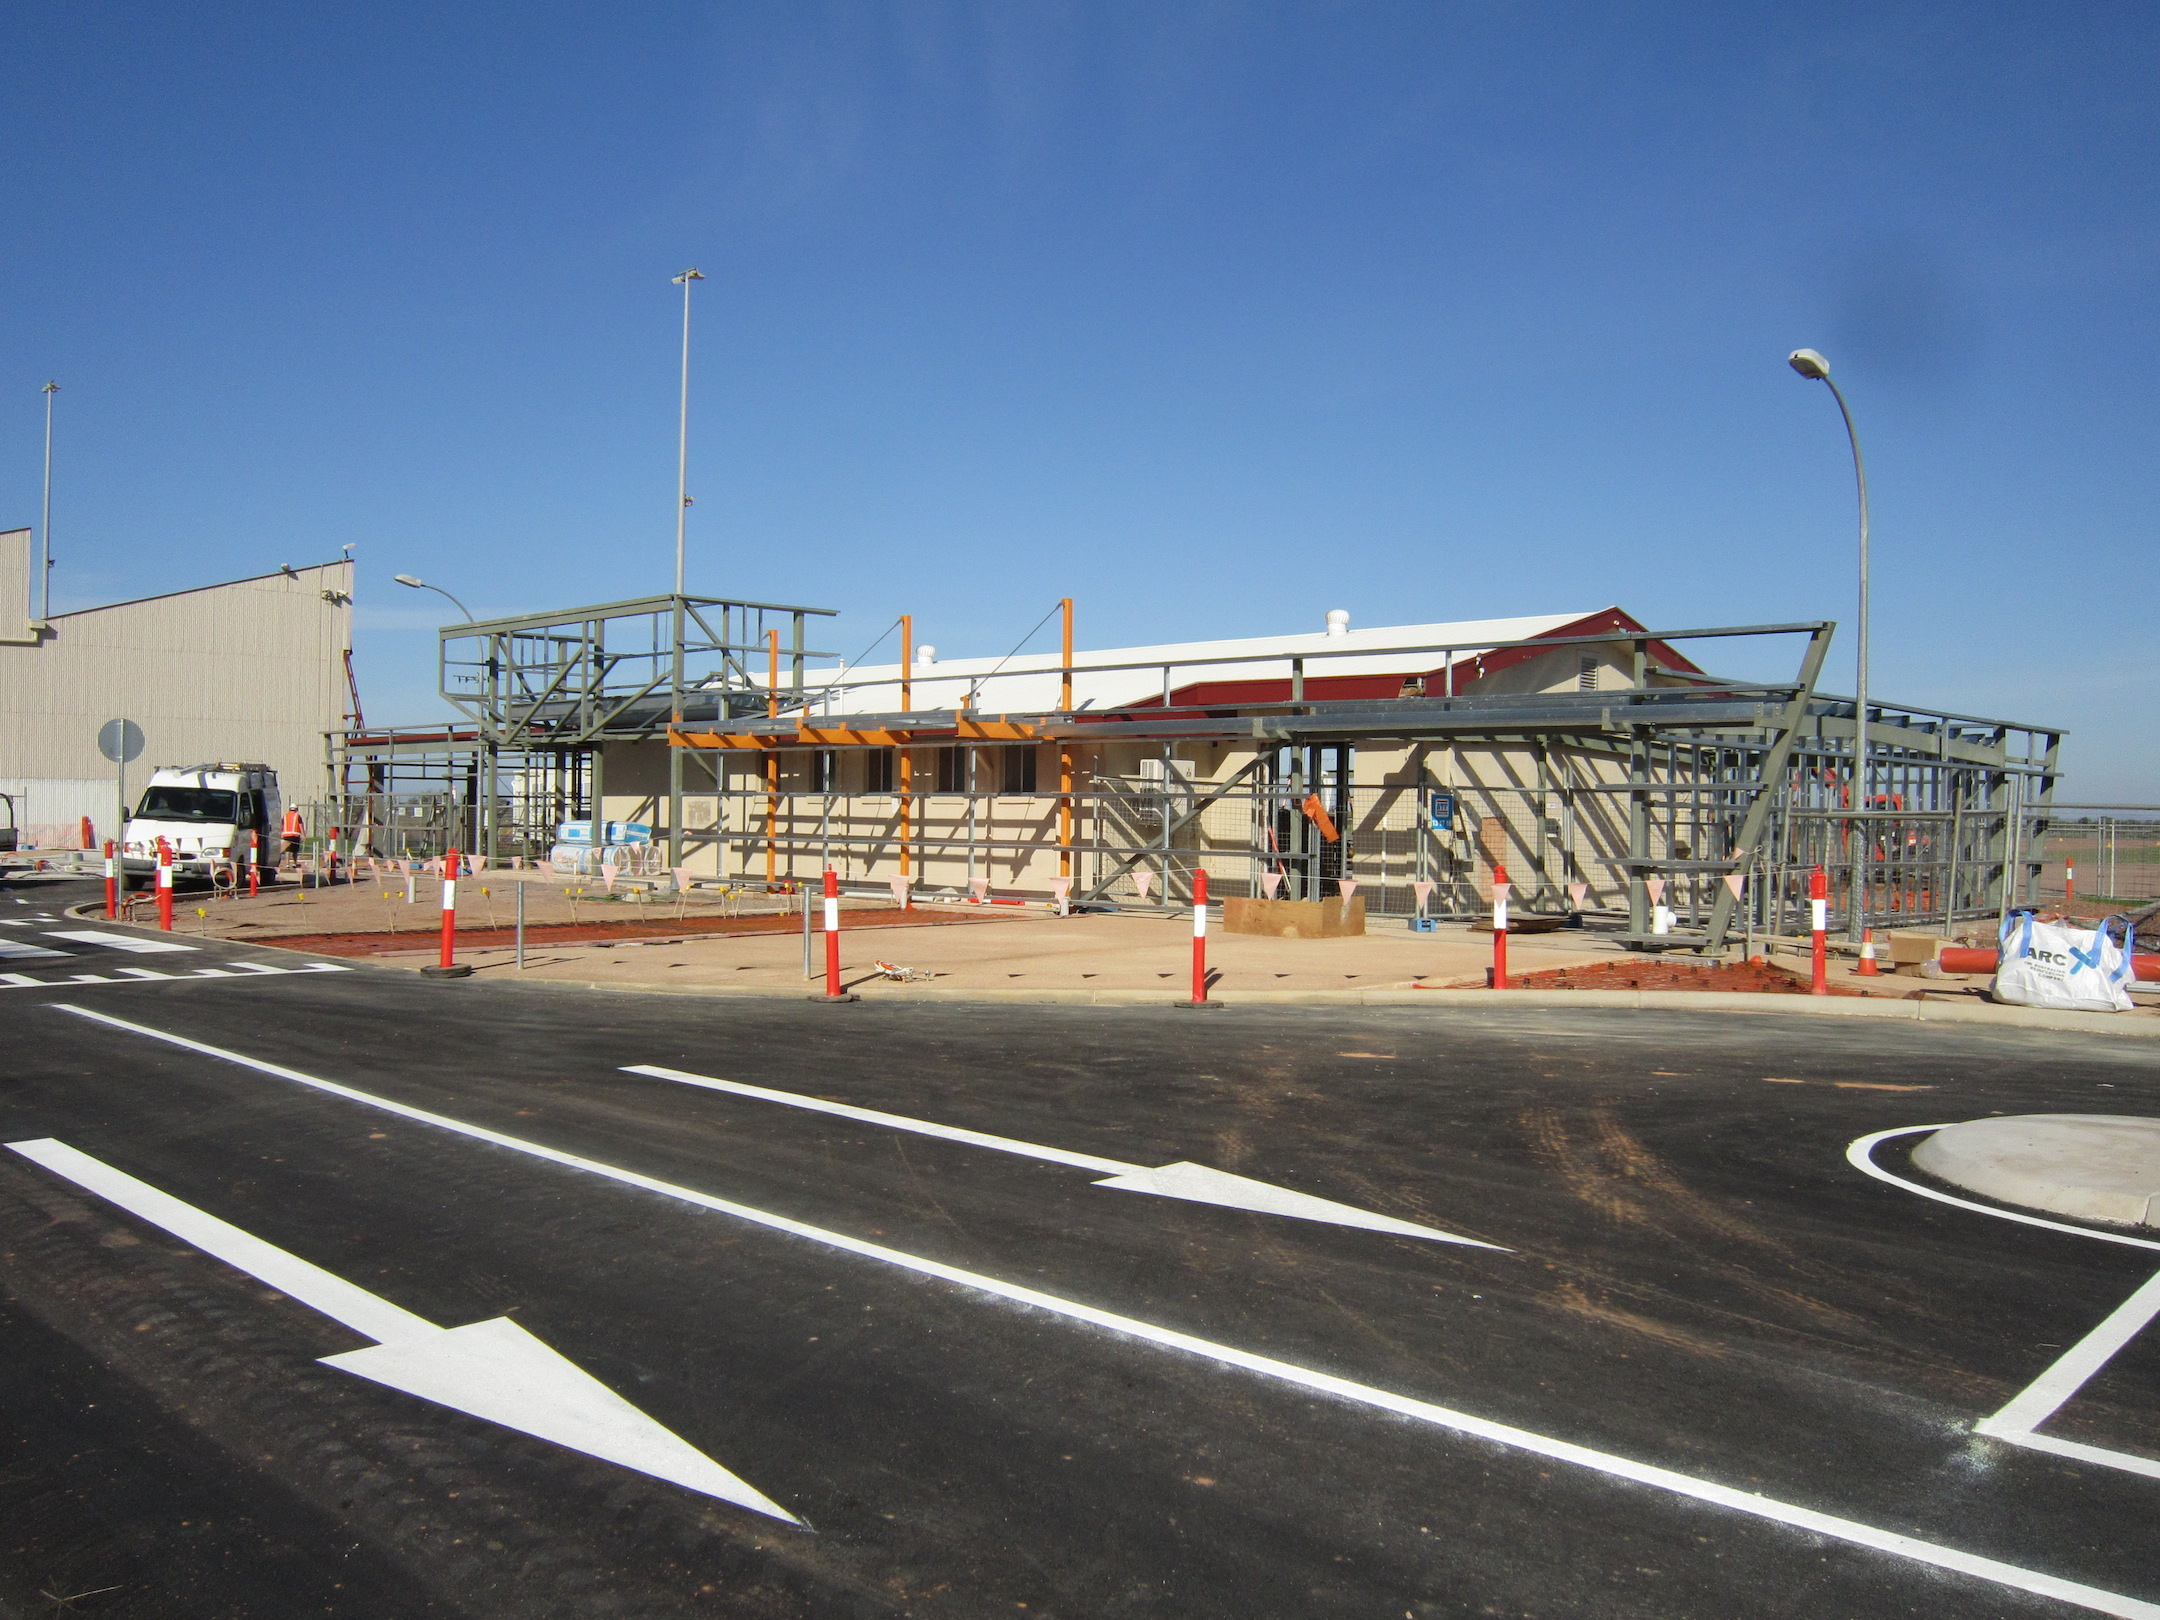 Whyalla Airport under construction